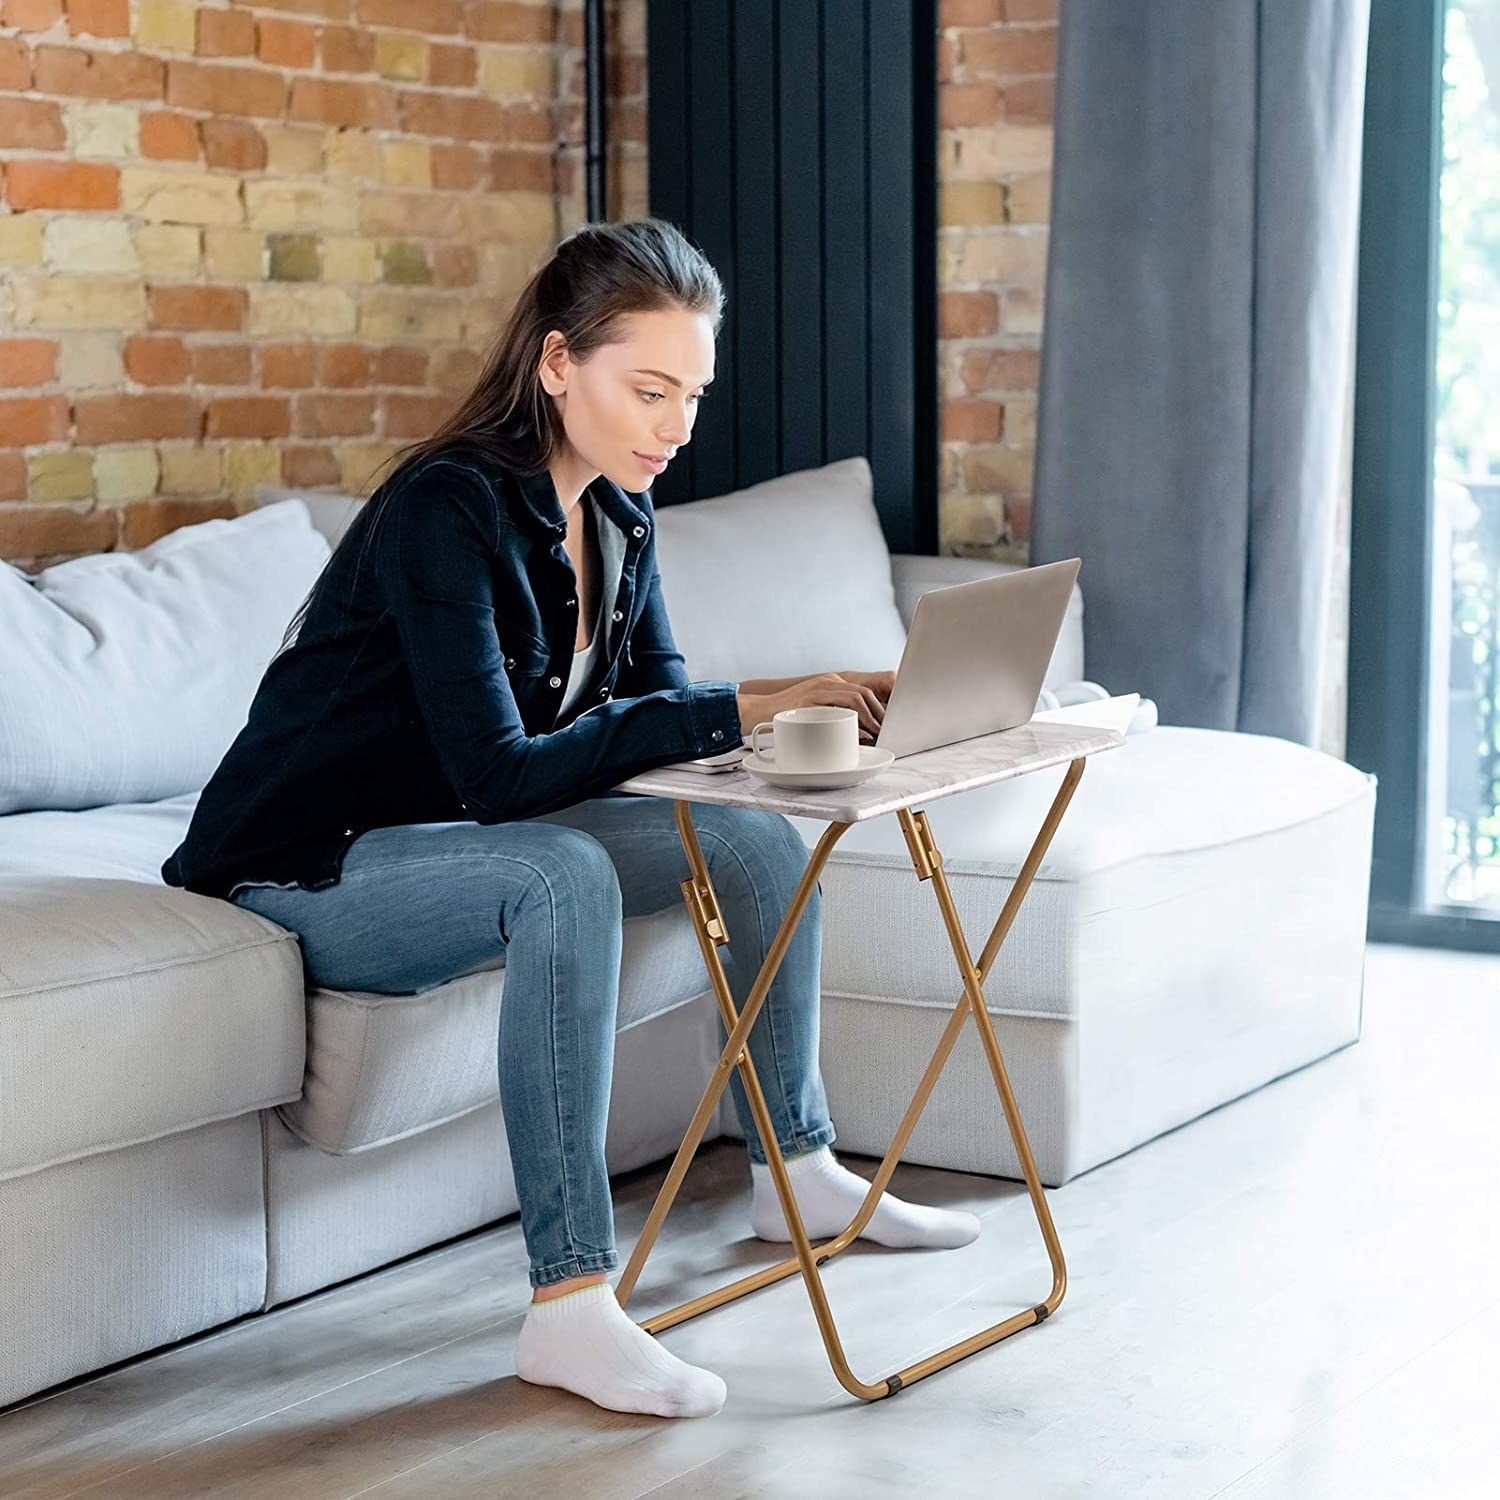 Model sitting on couch with folding table in front